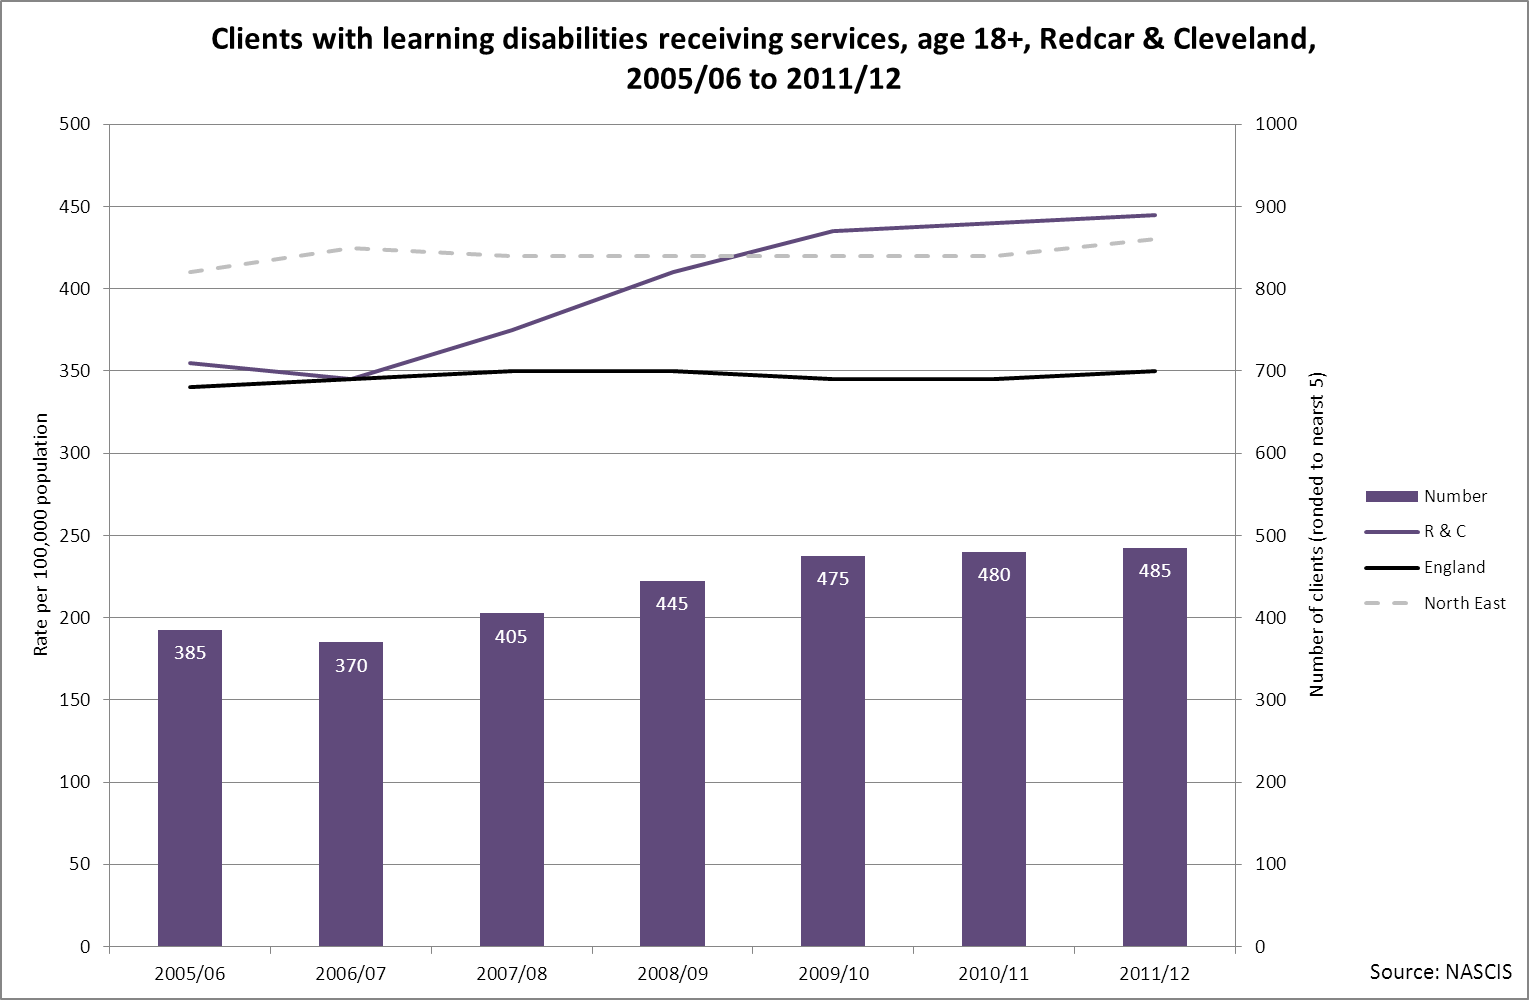 Clients with learning disabilities receiving services, R&C, 2005/06 to 2011/12